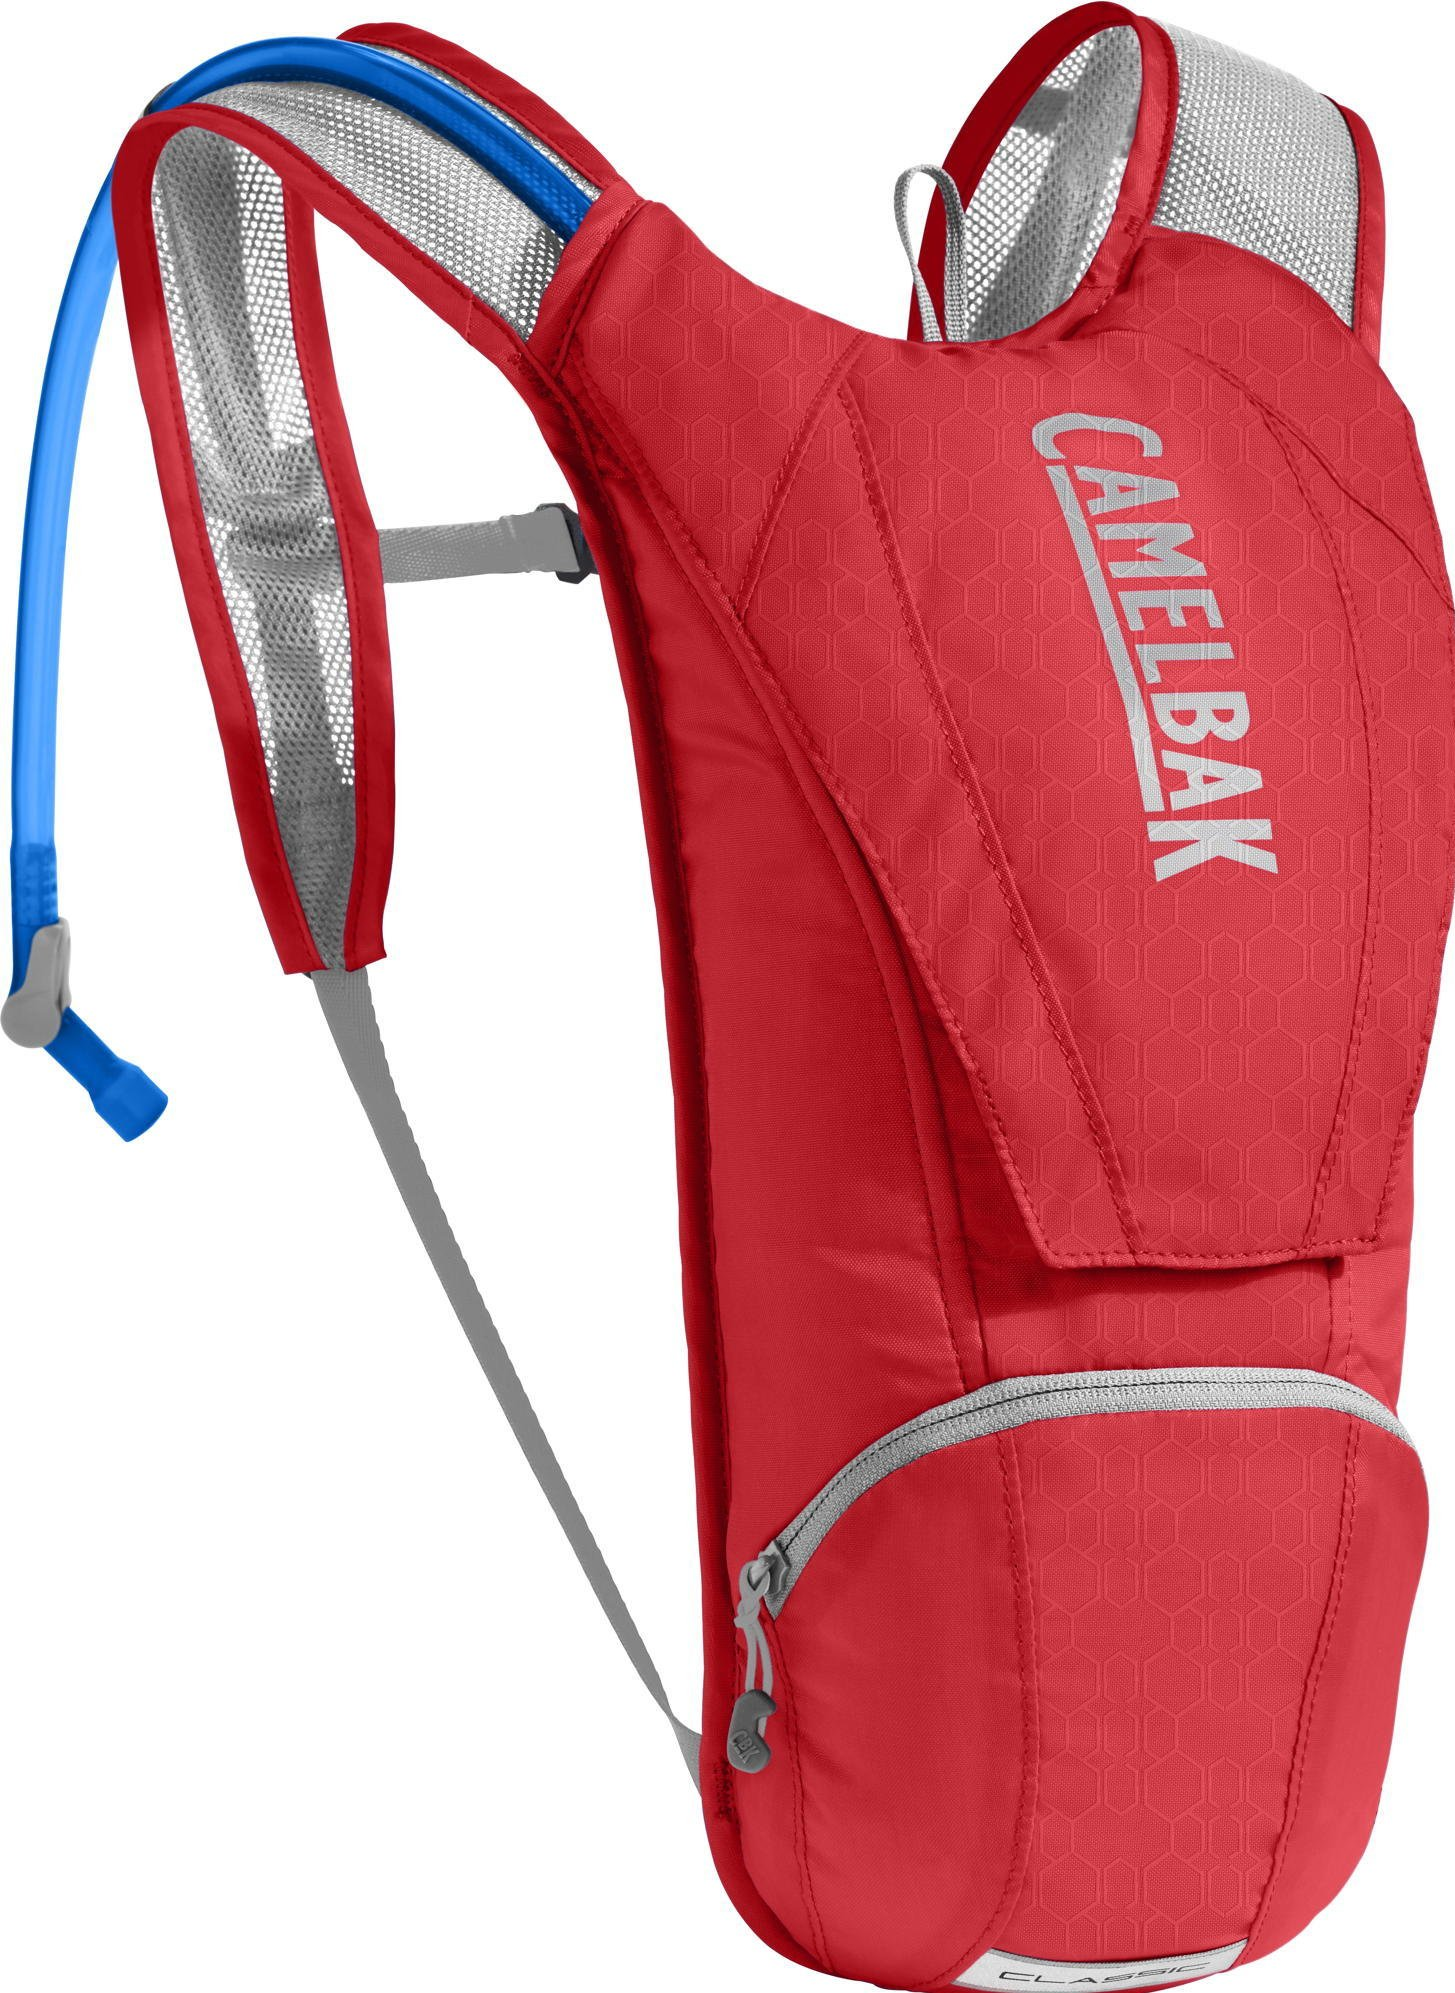 Afbeelding van Camelbak Classic Hydration Pack 3L